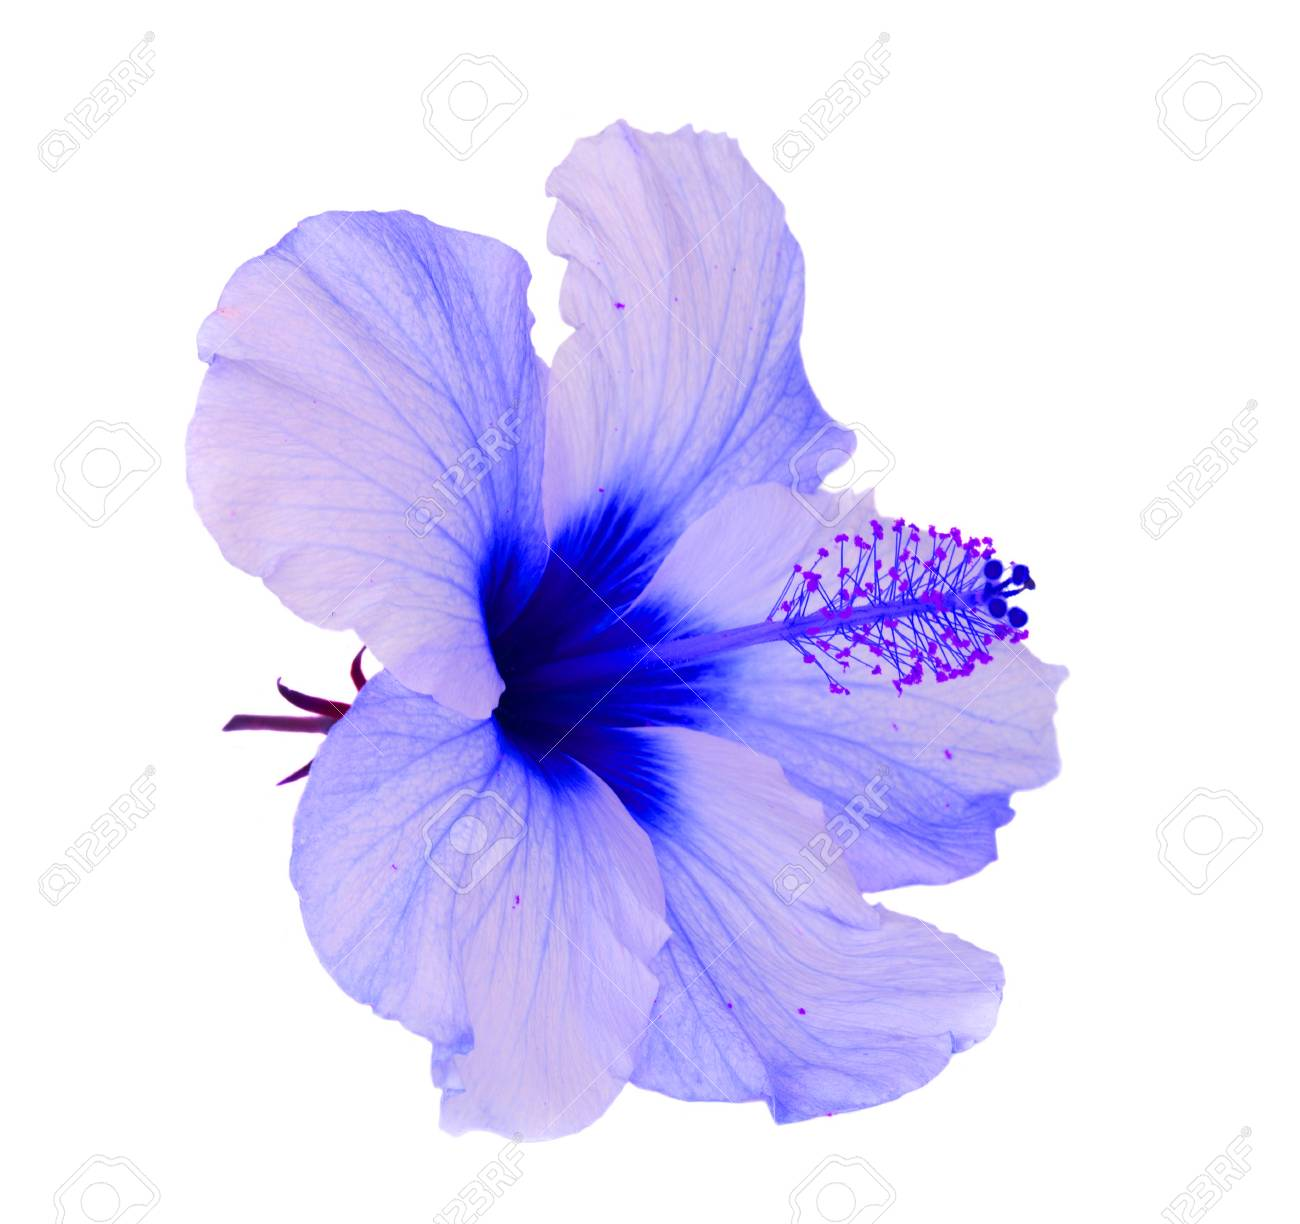 Tropical Flower Blue Hibiscus Flowers Isolated On White Background